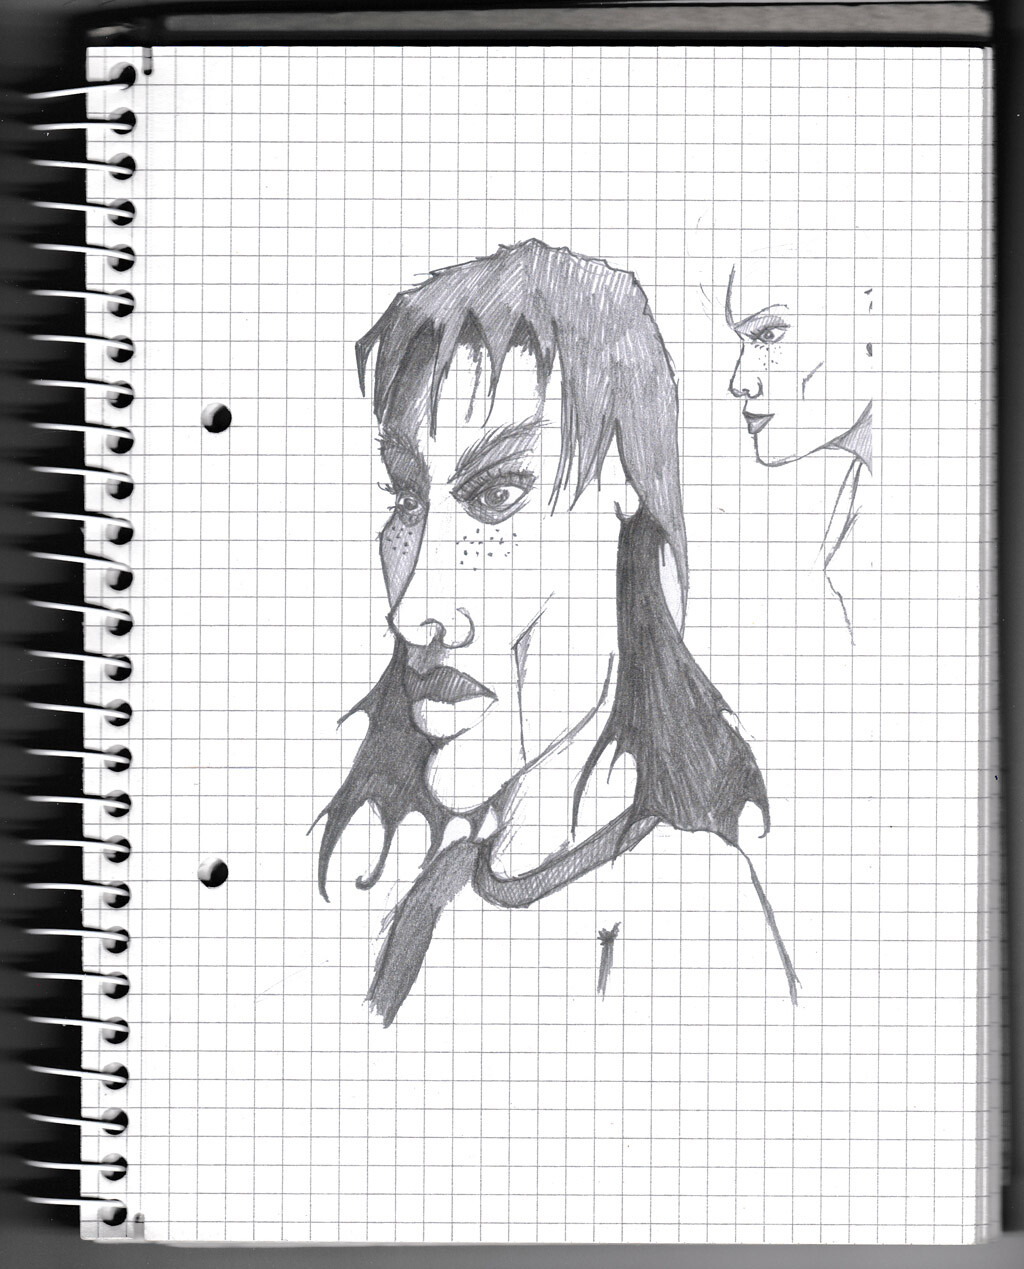 character, sketch, pencil, face,